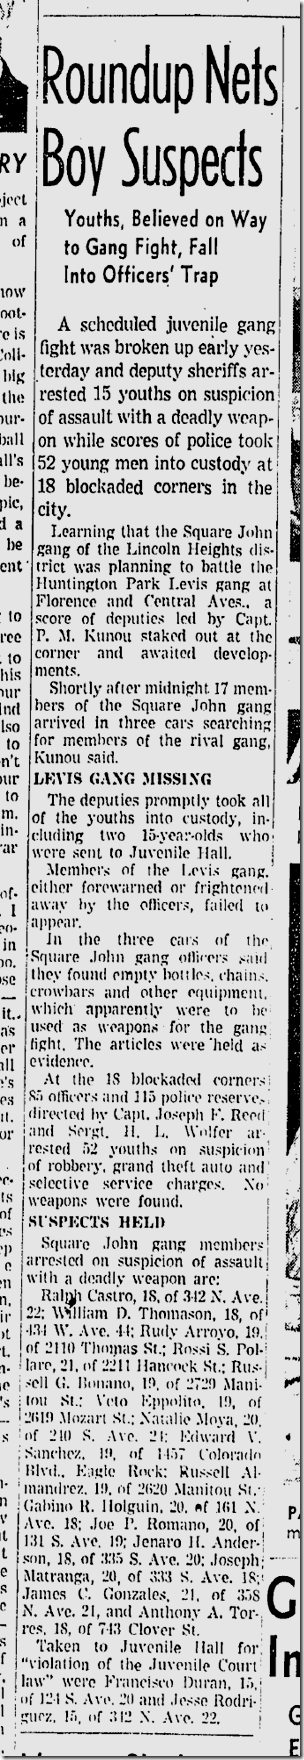 Aug. 24, 1942, Youth Gang